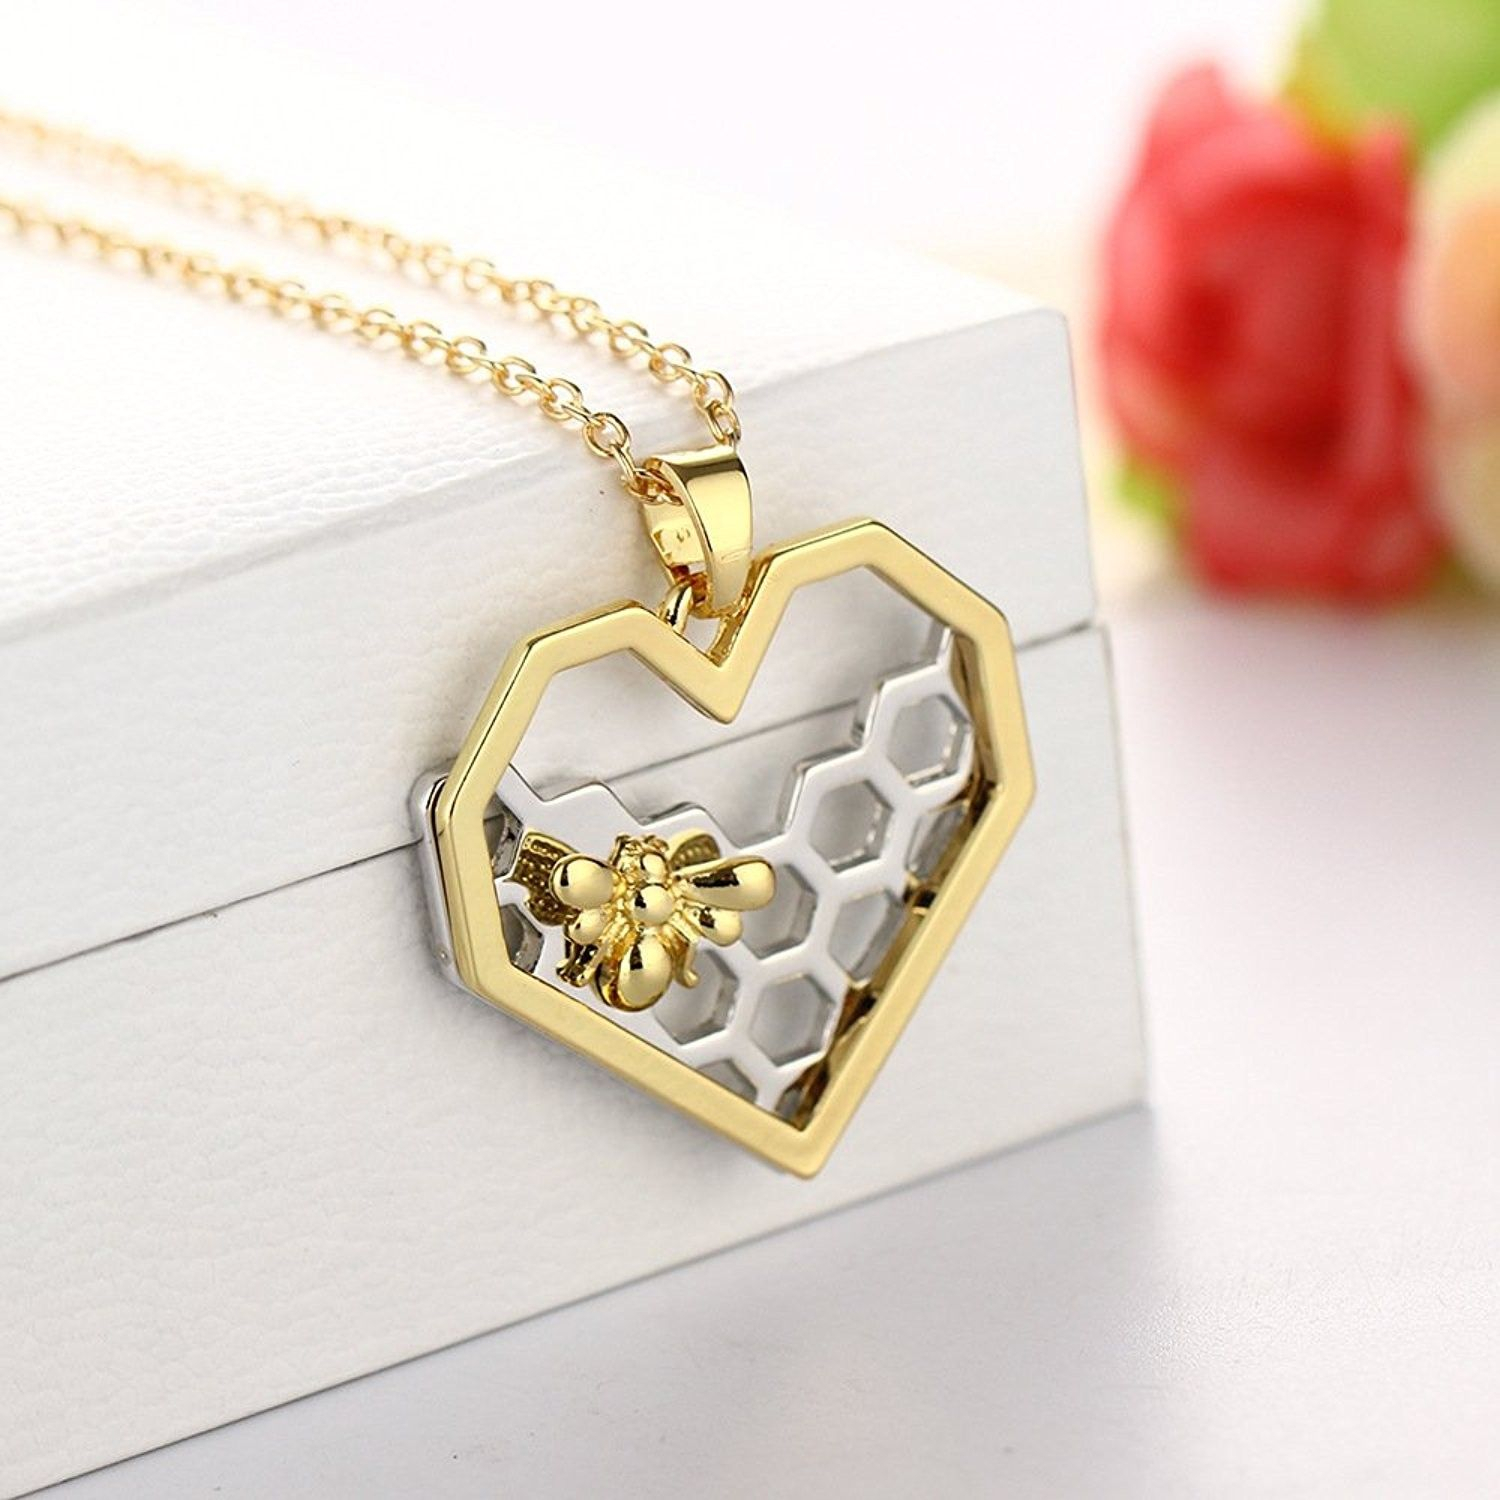 Shop, Necklaces, Pendants, Heart Hexagon Silver Honeycomb Necklace Pertaining To Newest Heart Honeycomb Lace Pendant Necklaces (Gallery 10 of 25)